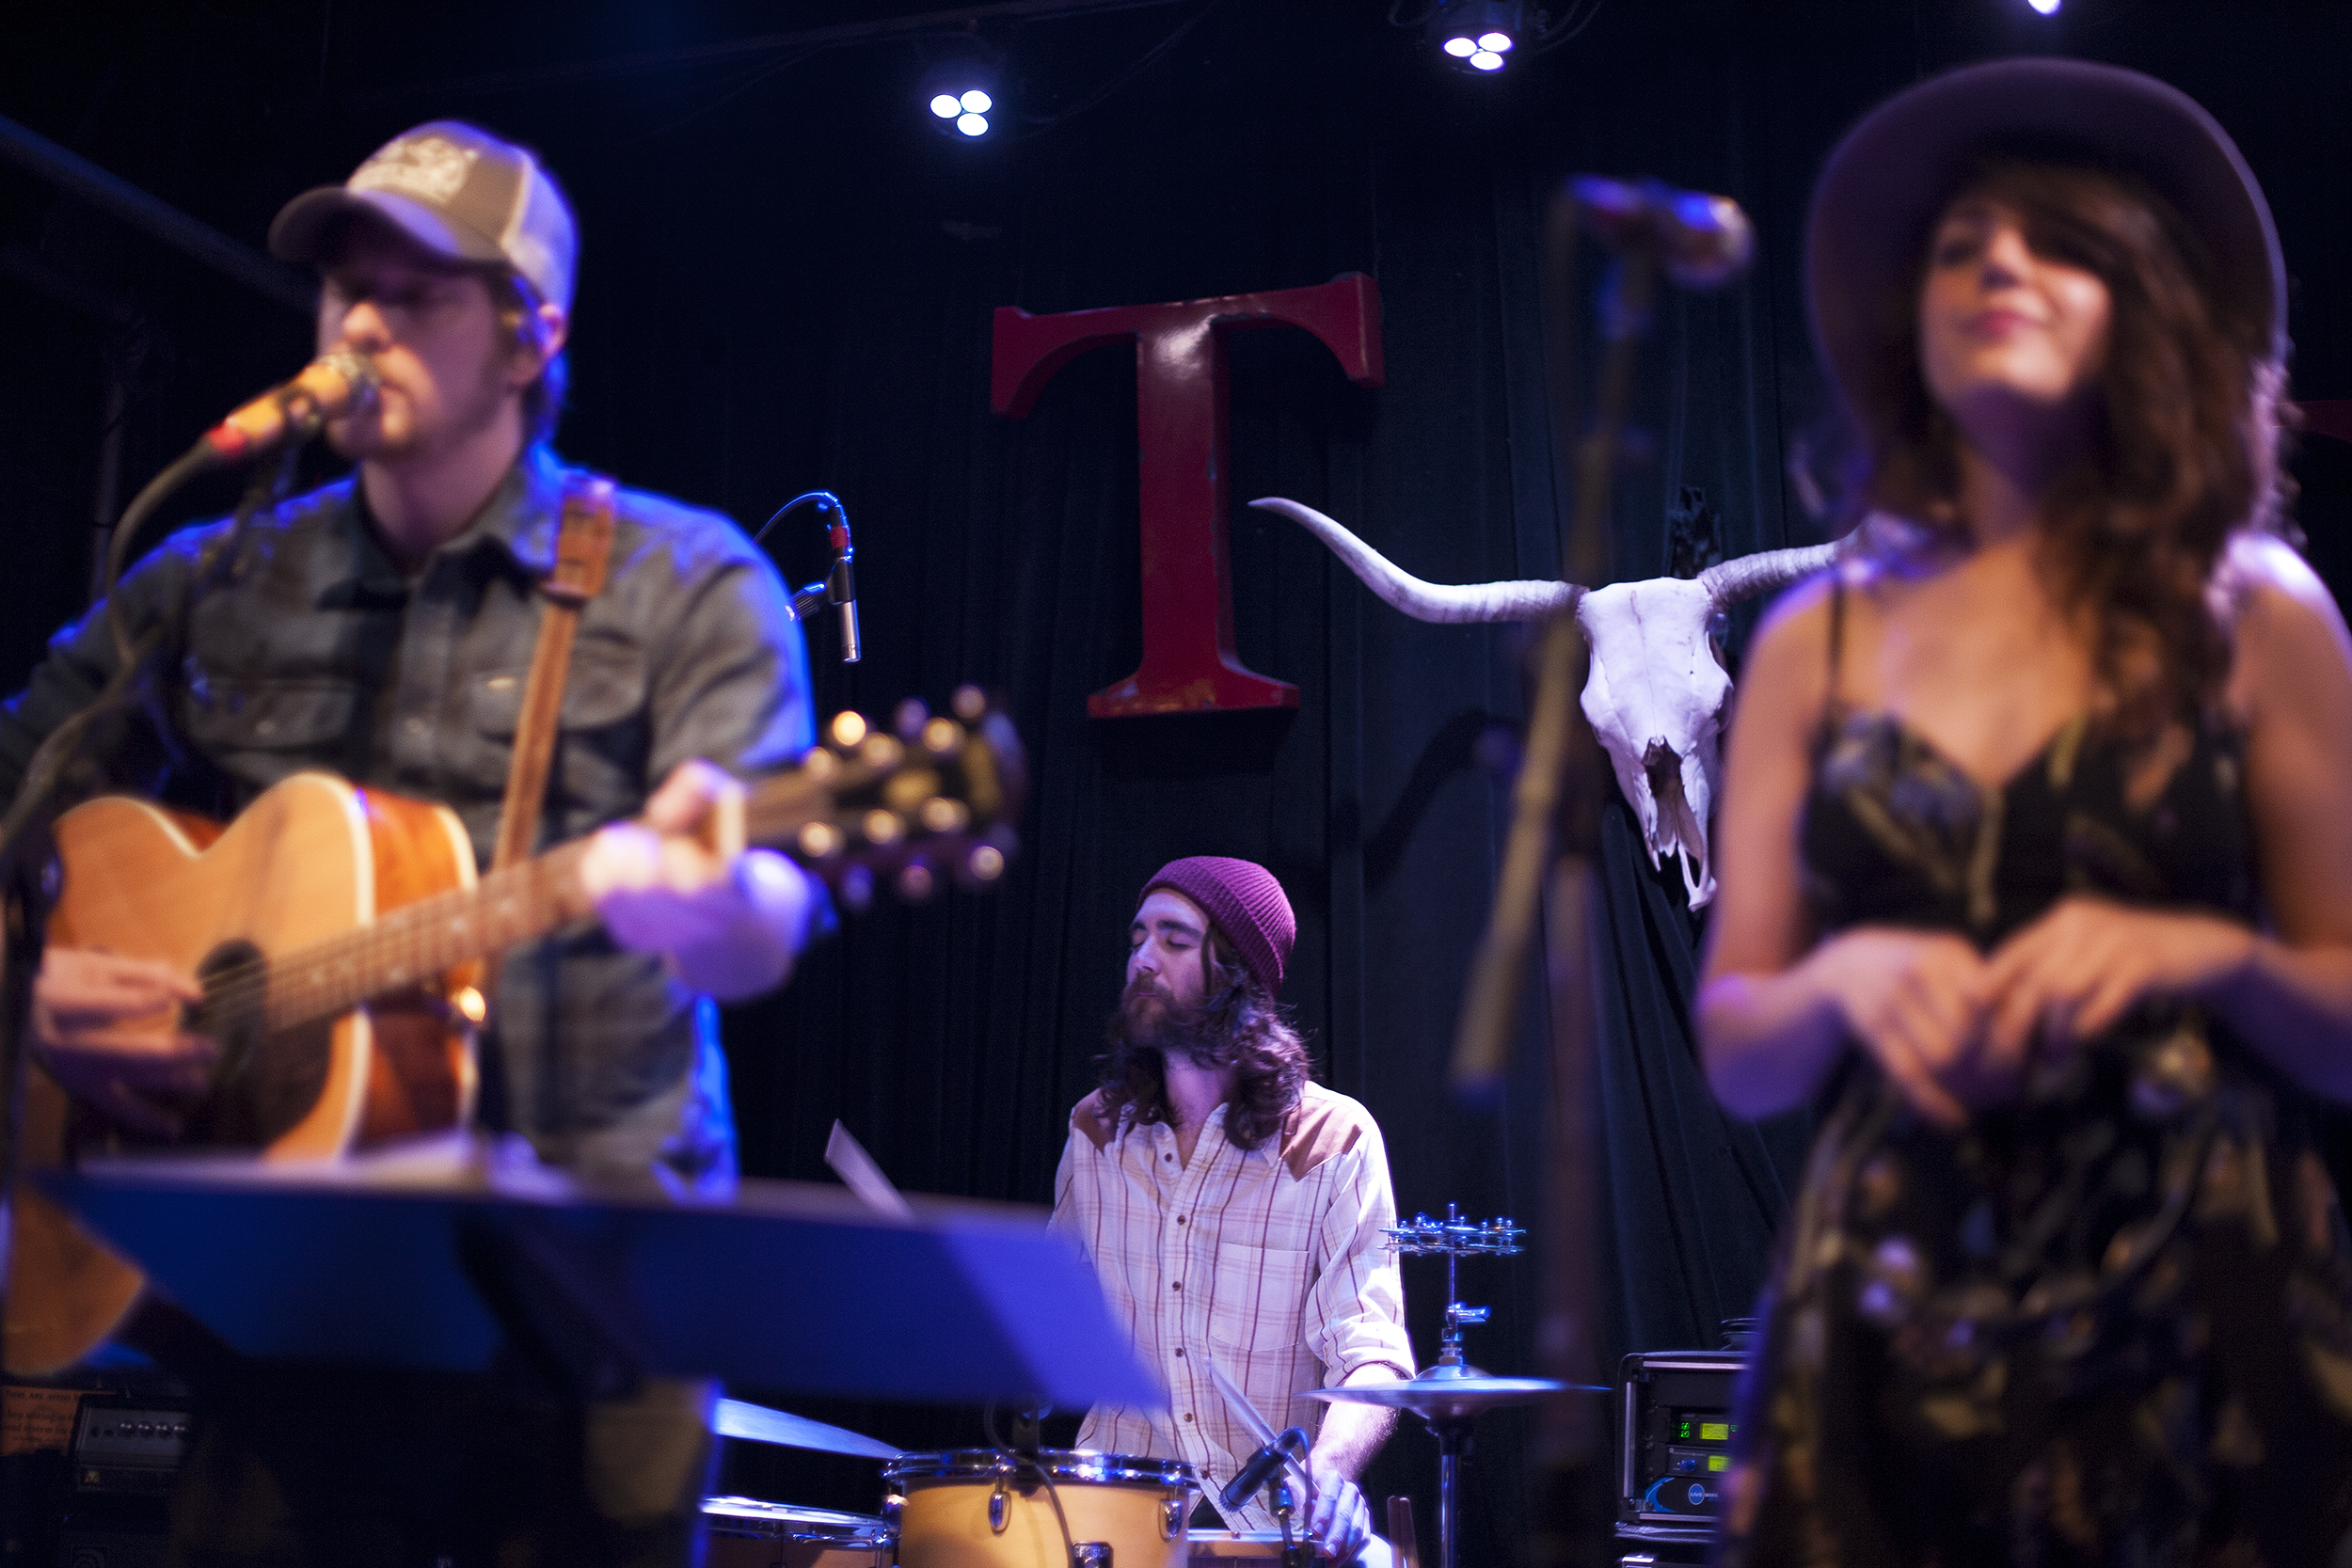 Old Coast Live at Tractor Tavern